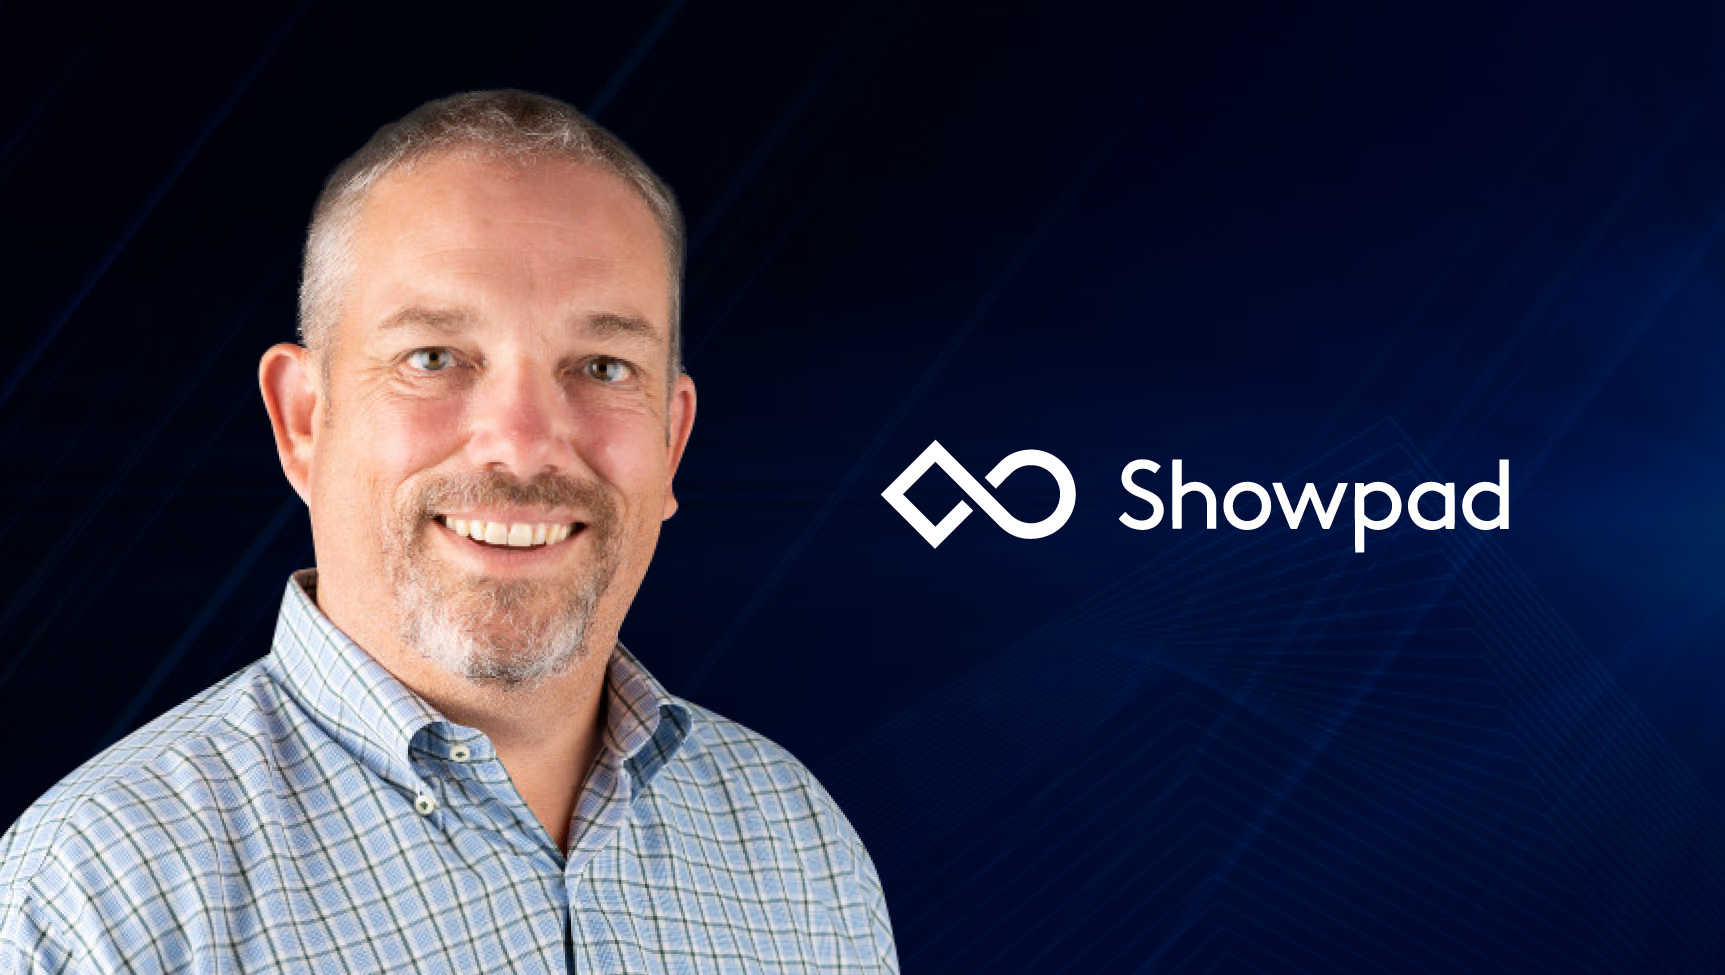 SalesTech Star Interview with Jason Holmes, COO, Showpad